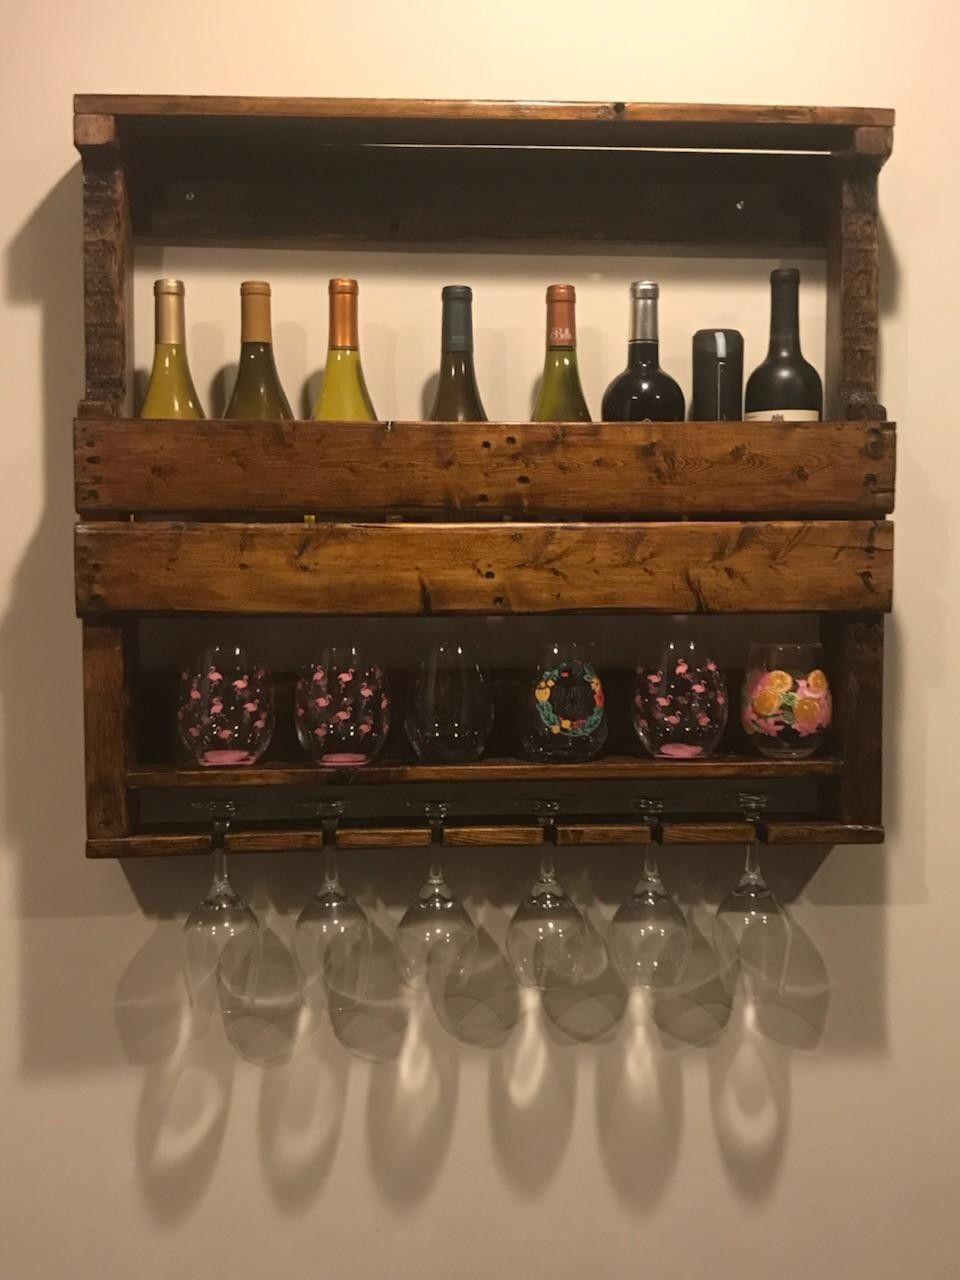 I built this wine rack for a friend using reclaimed pallet